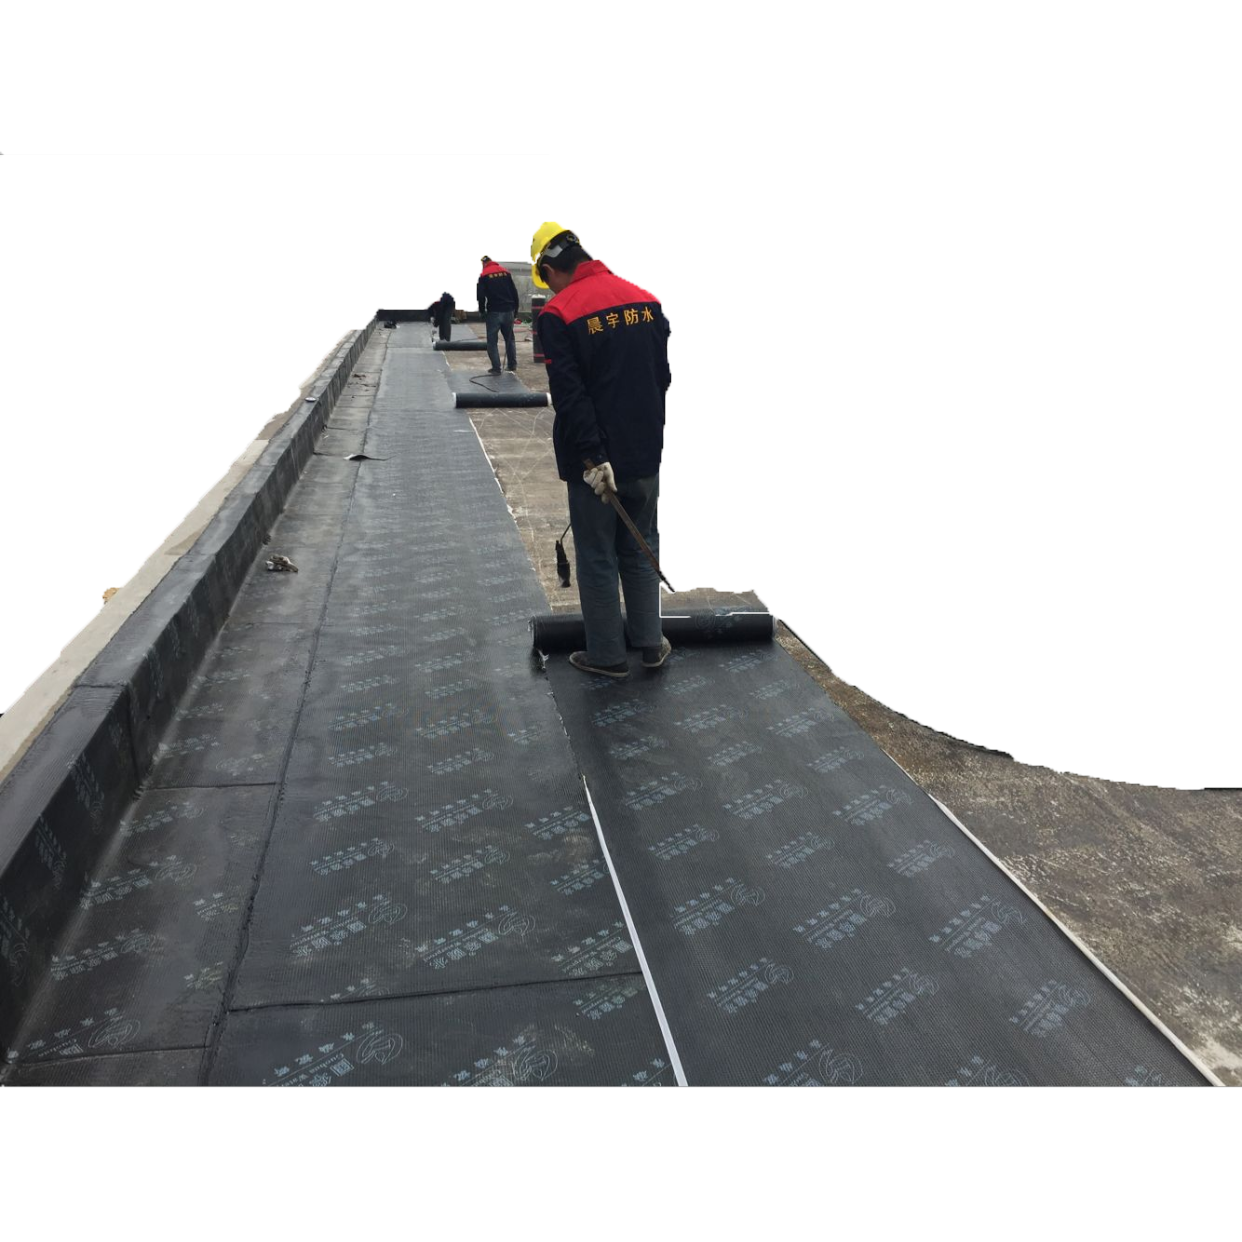 China Bitumen Roofing Sheet China Bitumen Roofing Sheet Manufacturers And Suppliers On Alibaba Com